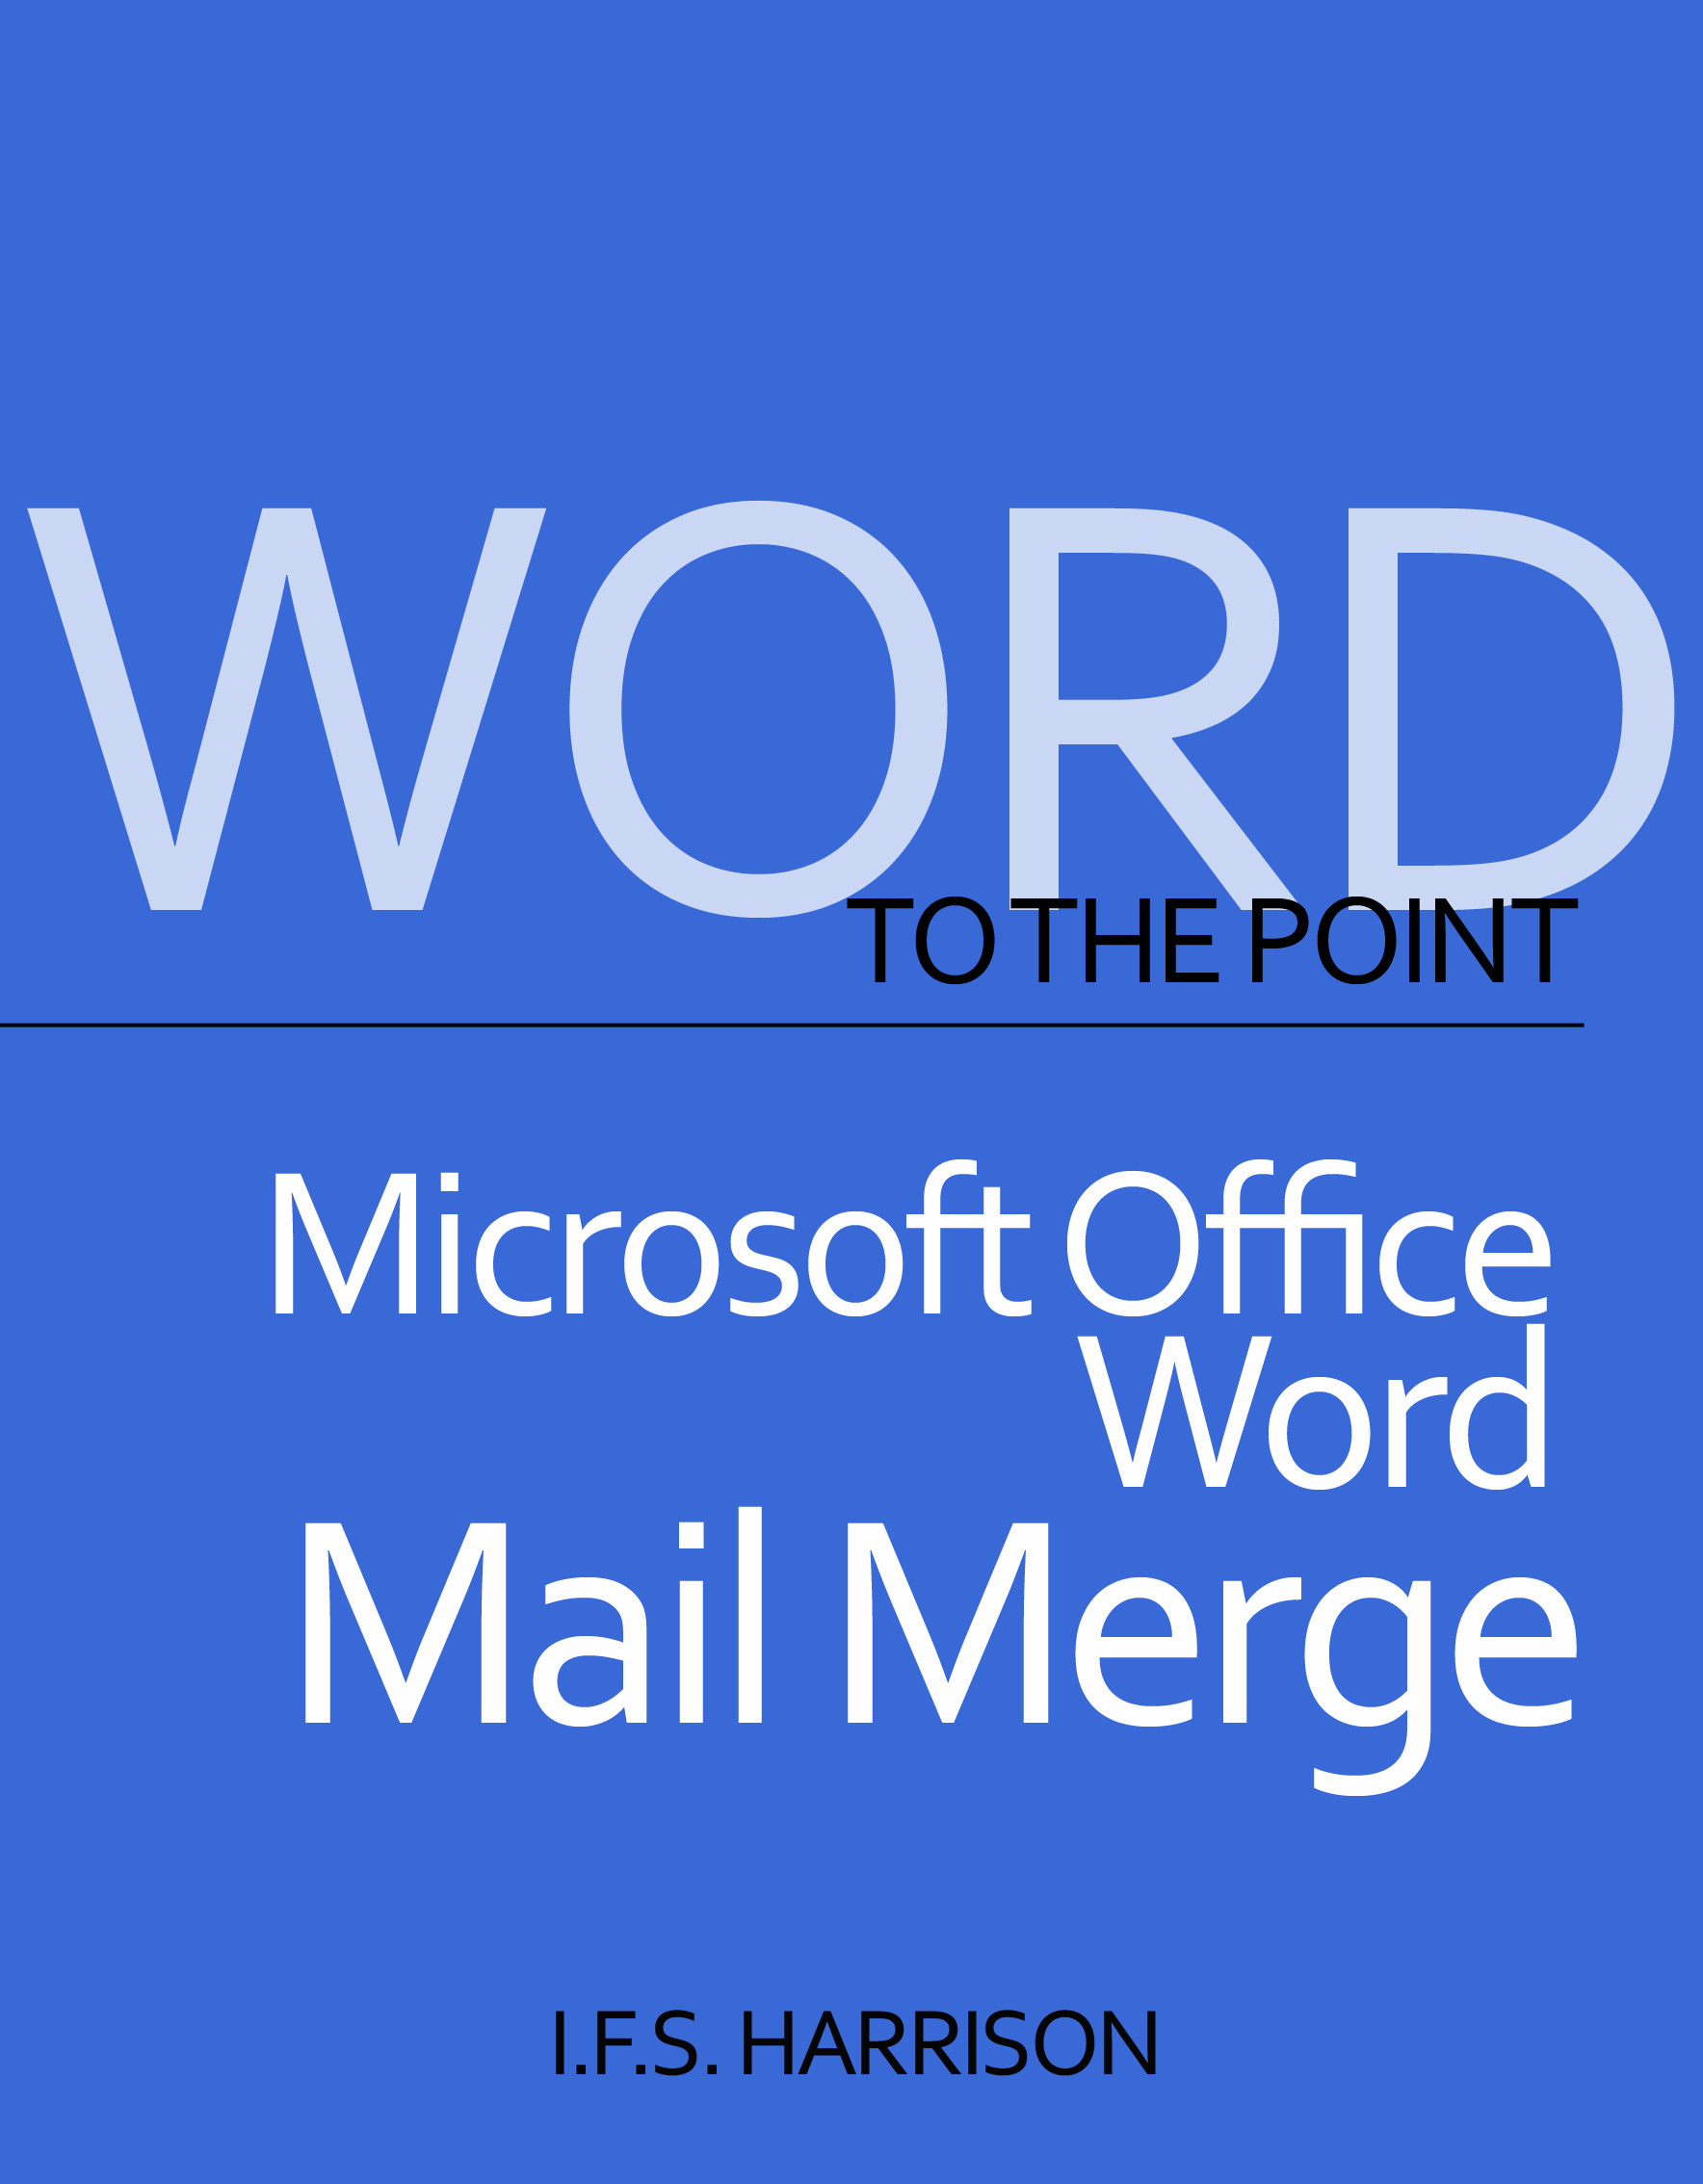 To The Point… Microsoft Office Word Mail Merge